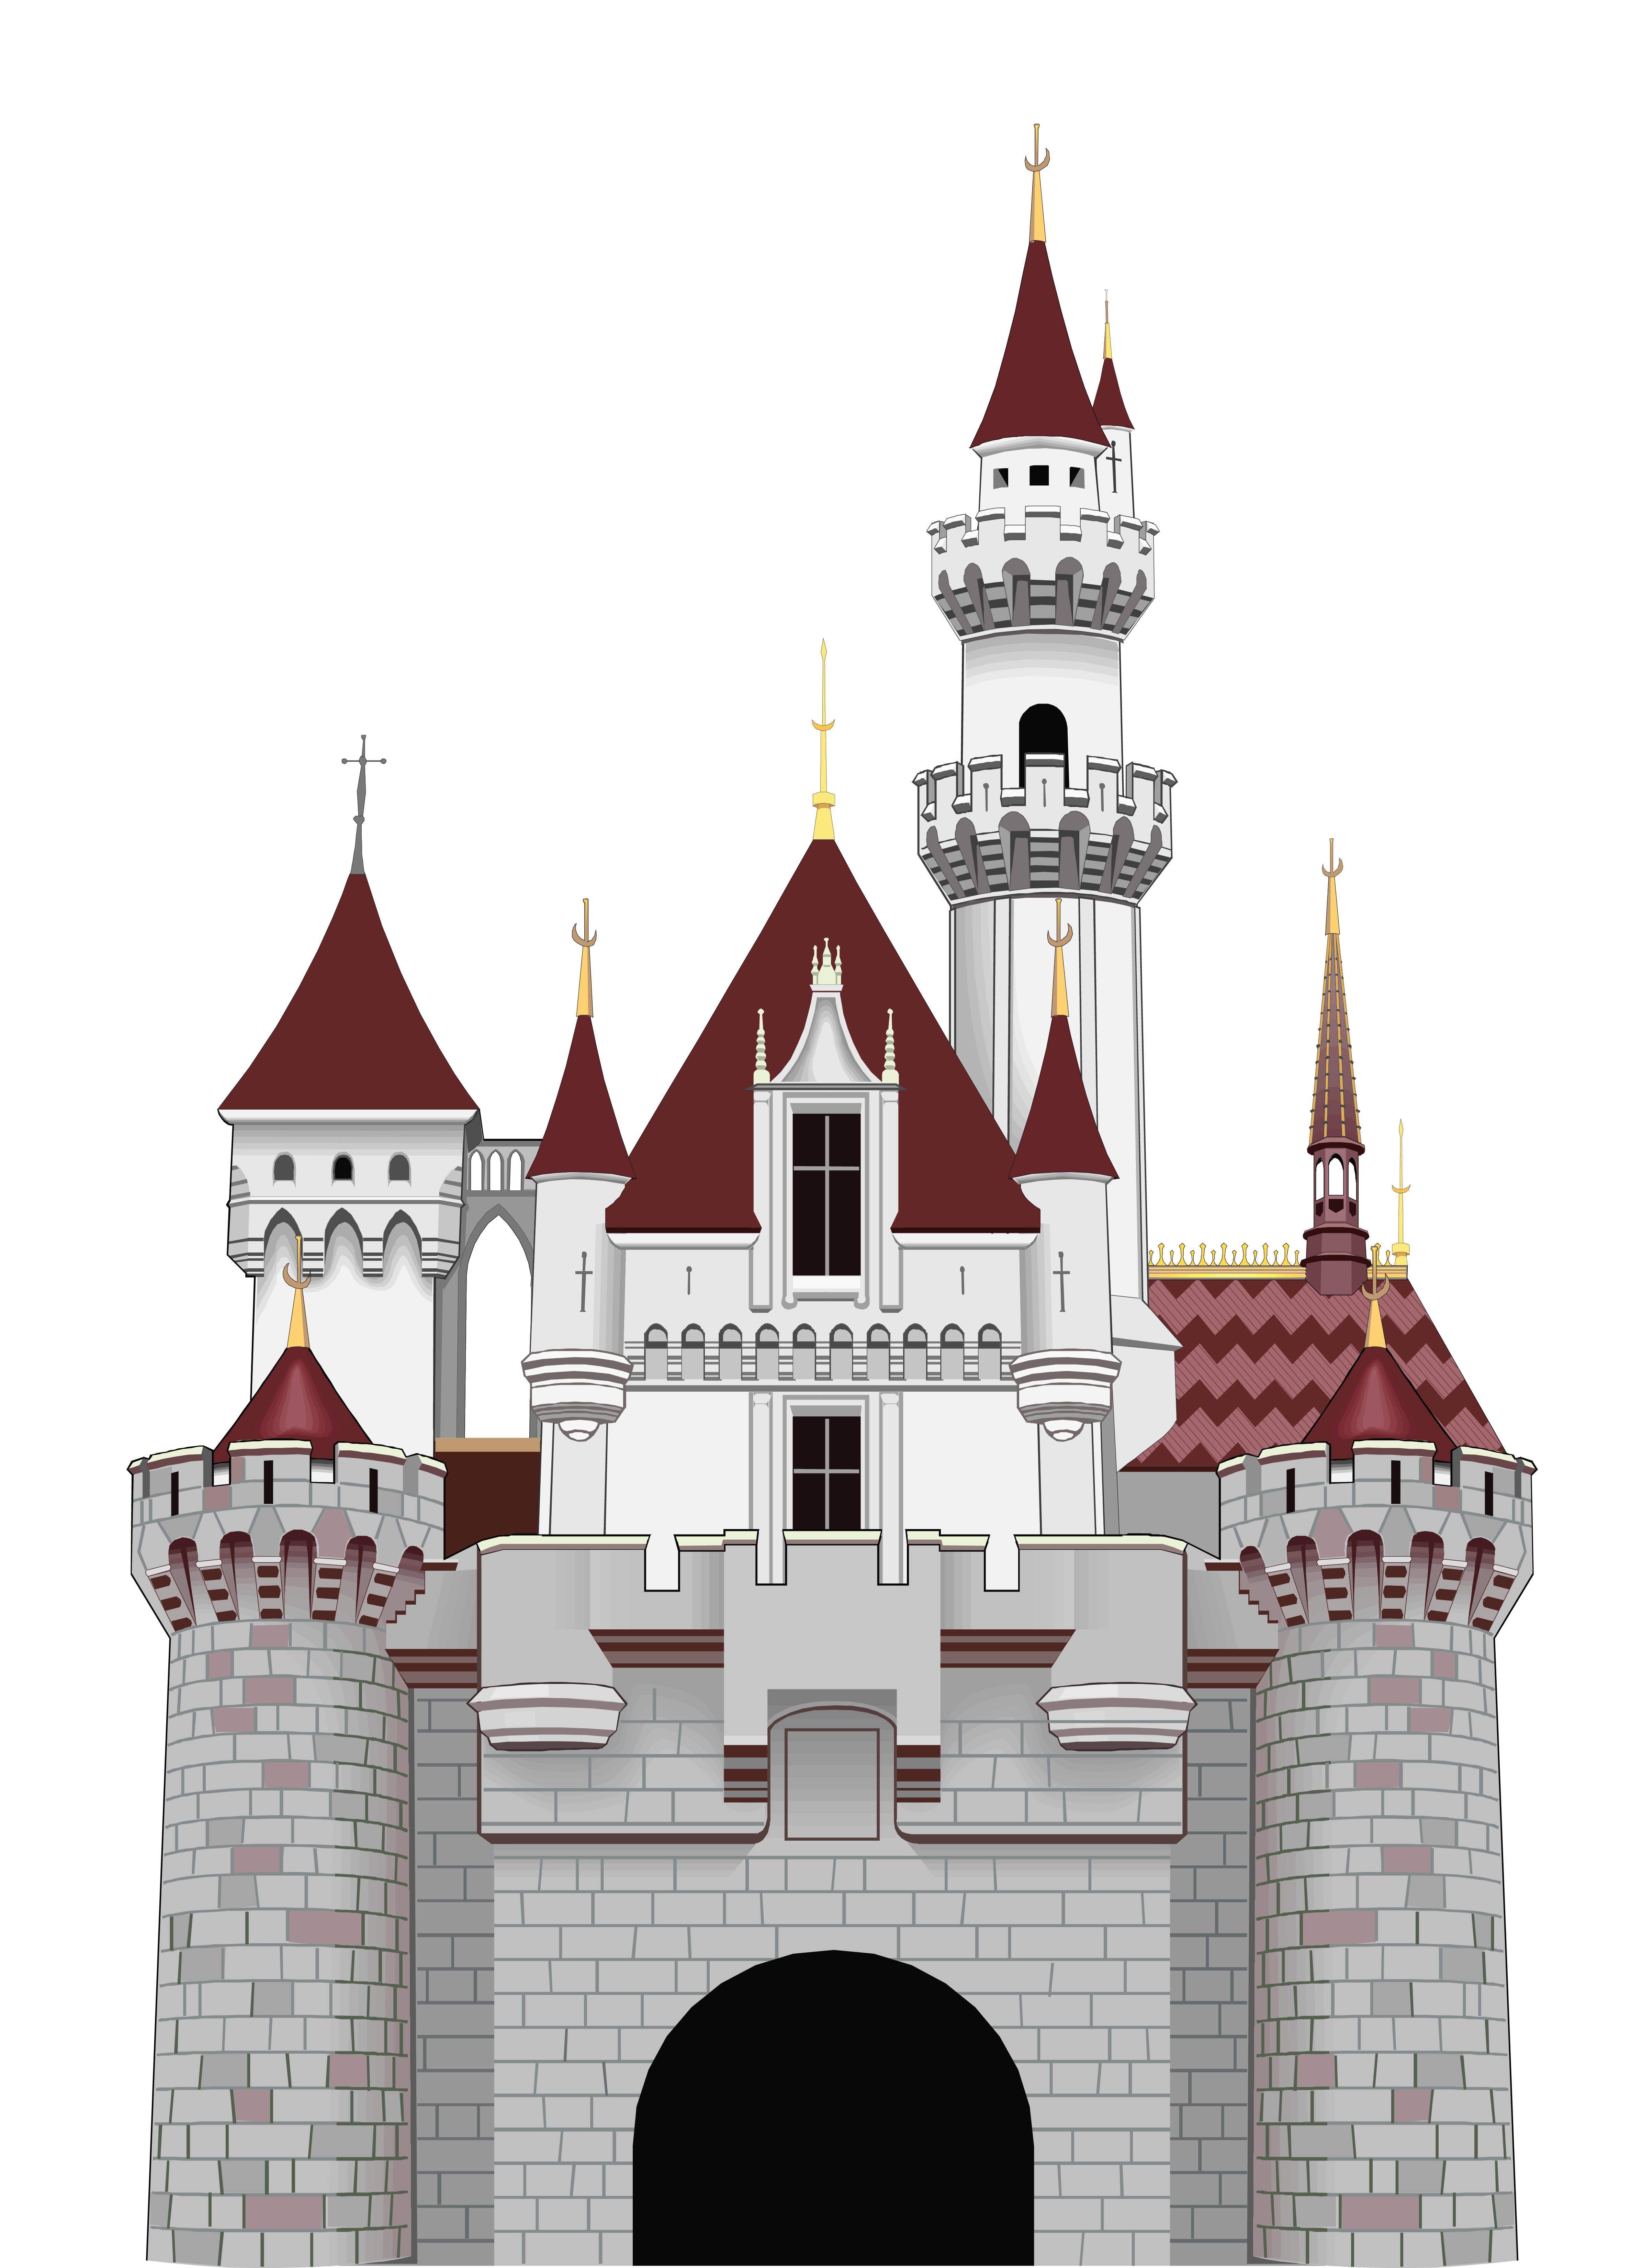 Png gallery yopriceville high. I clipart castle